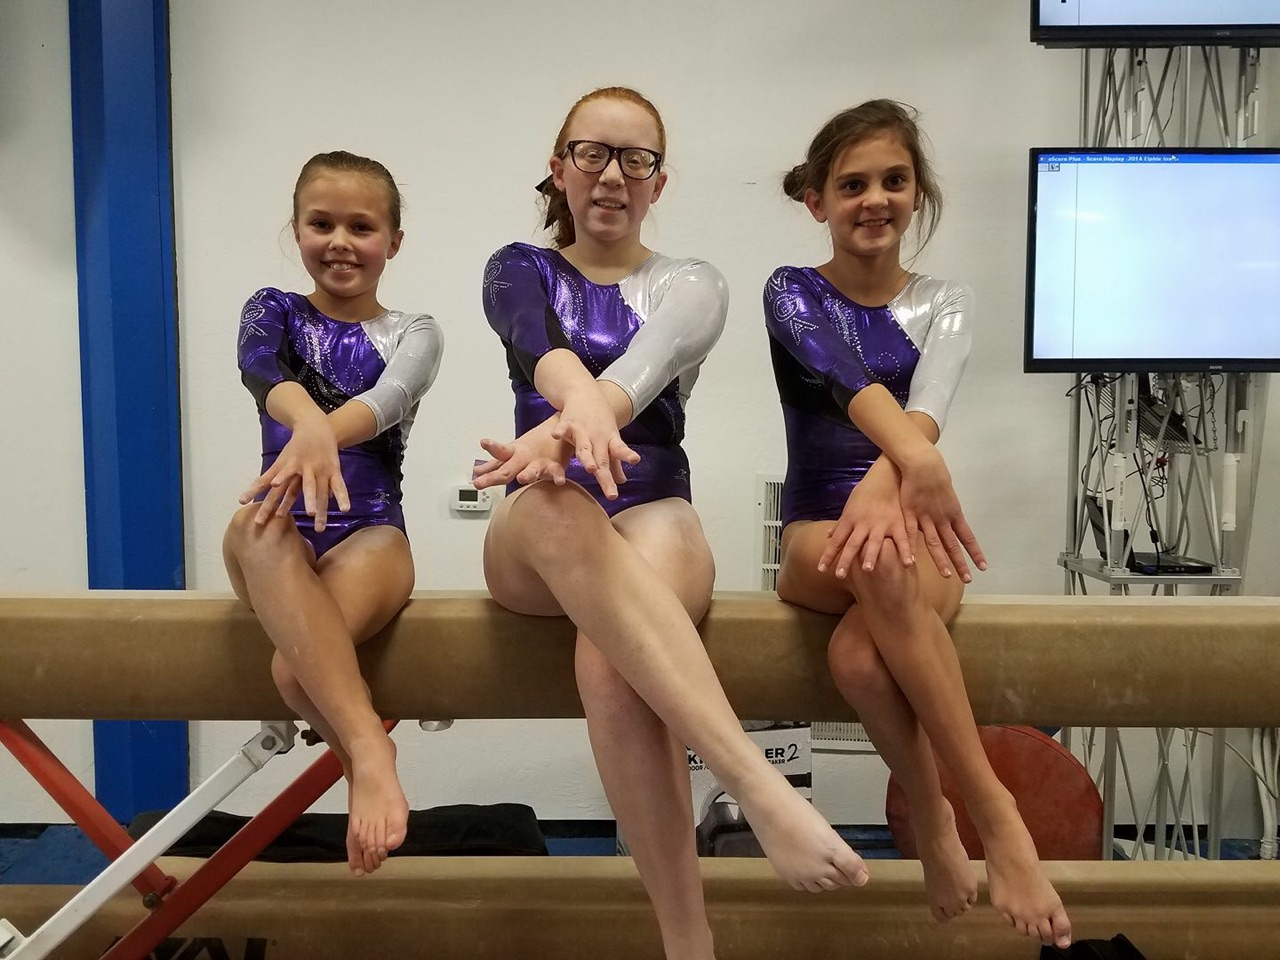 Gymnasts sitting on balance beam